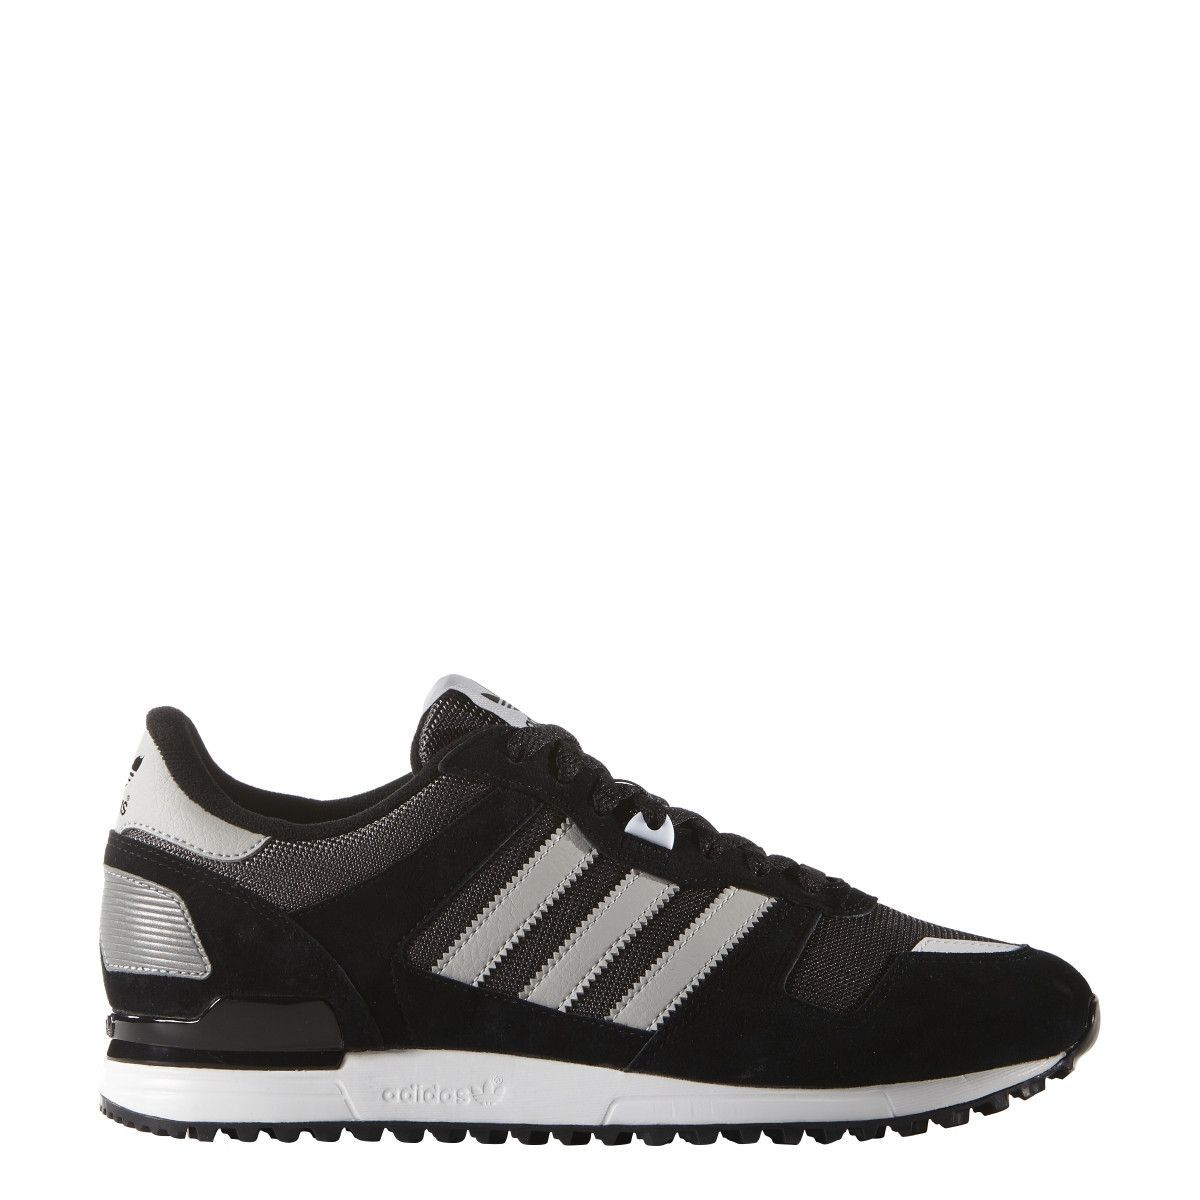 designer fashion 10293 6cad7 Mens adidas zx 700 sneakers